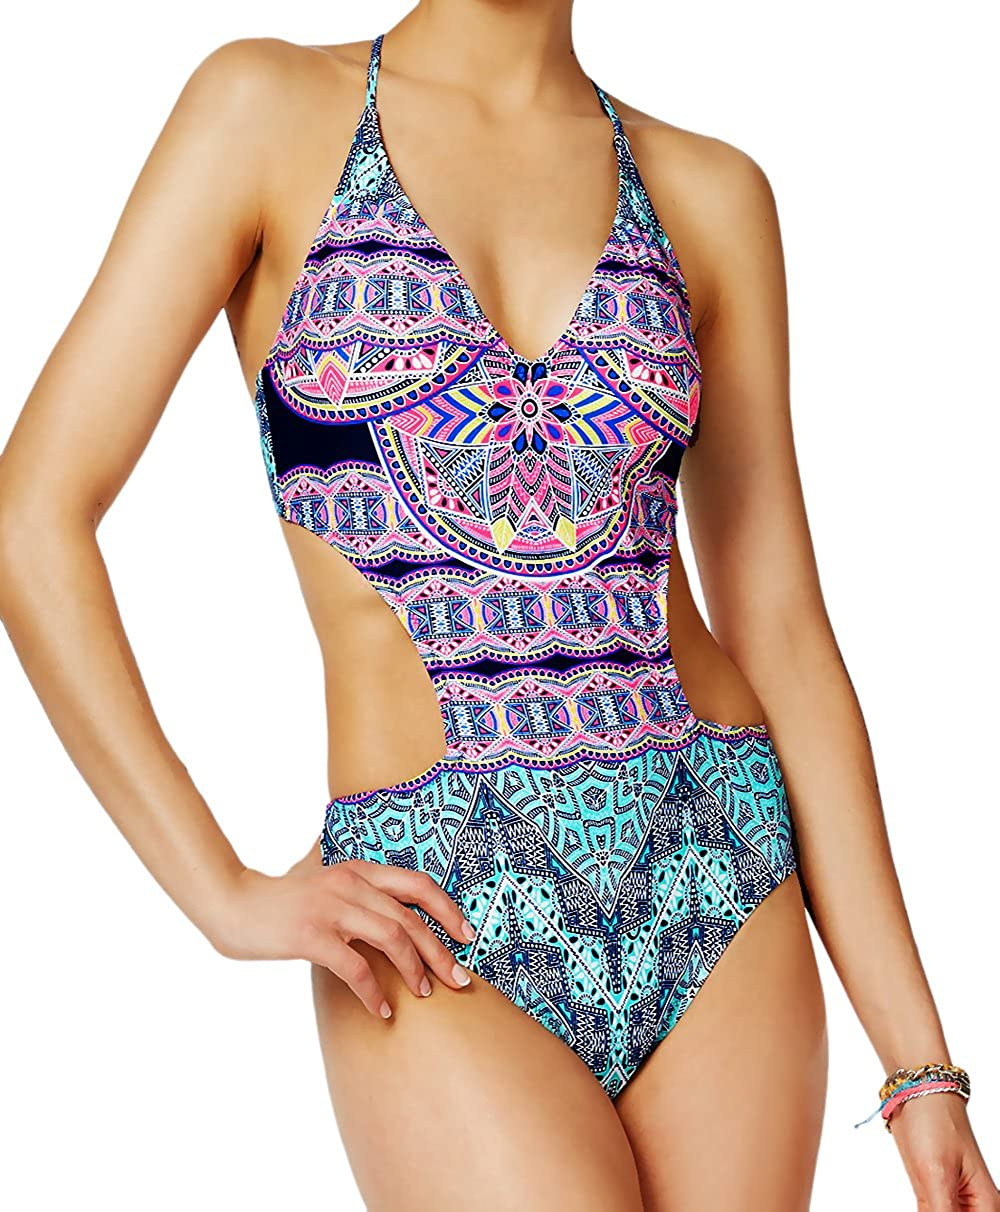 a73a47c1d47d9 One Piece Bathing Suit with V-Neck Style & Skinny Cross Back Straps Sexy Cut  Out Design at Waist Mojave Tribal Print in Purple and Green